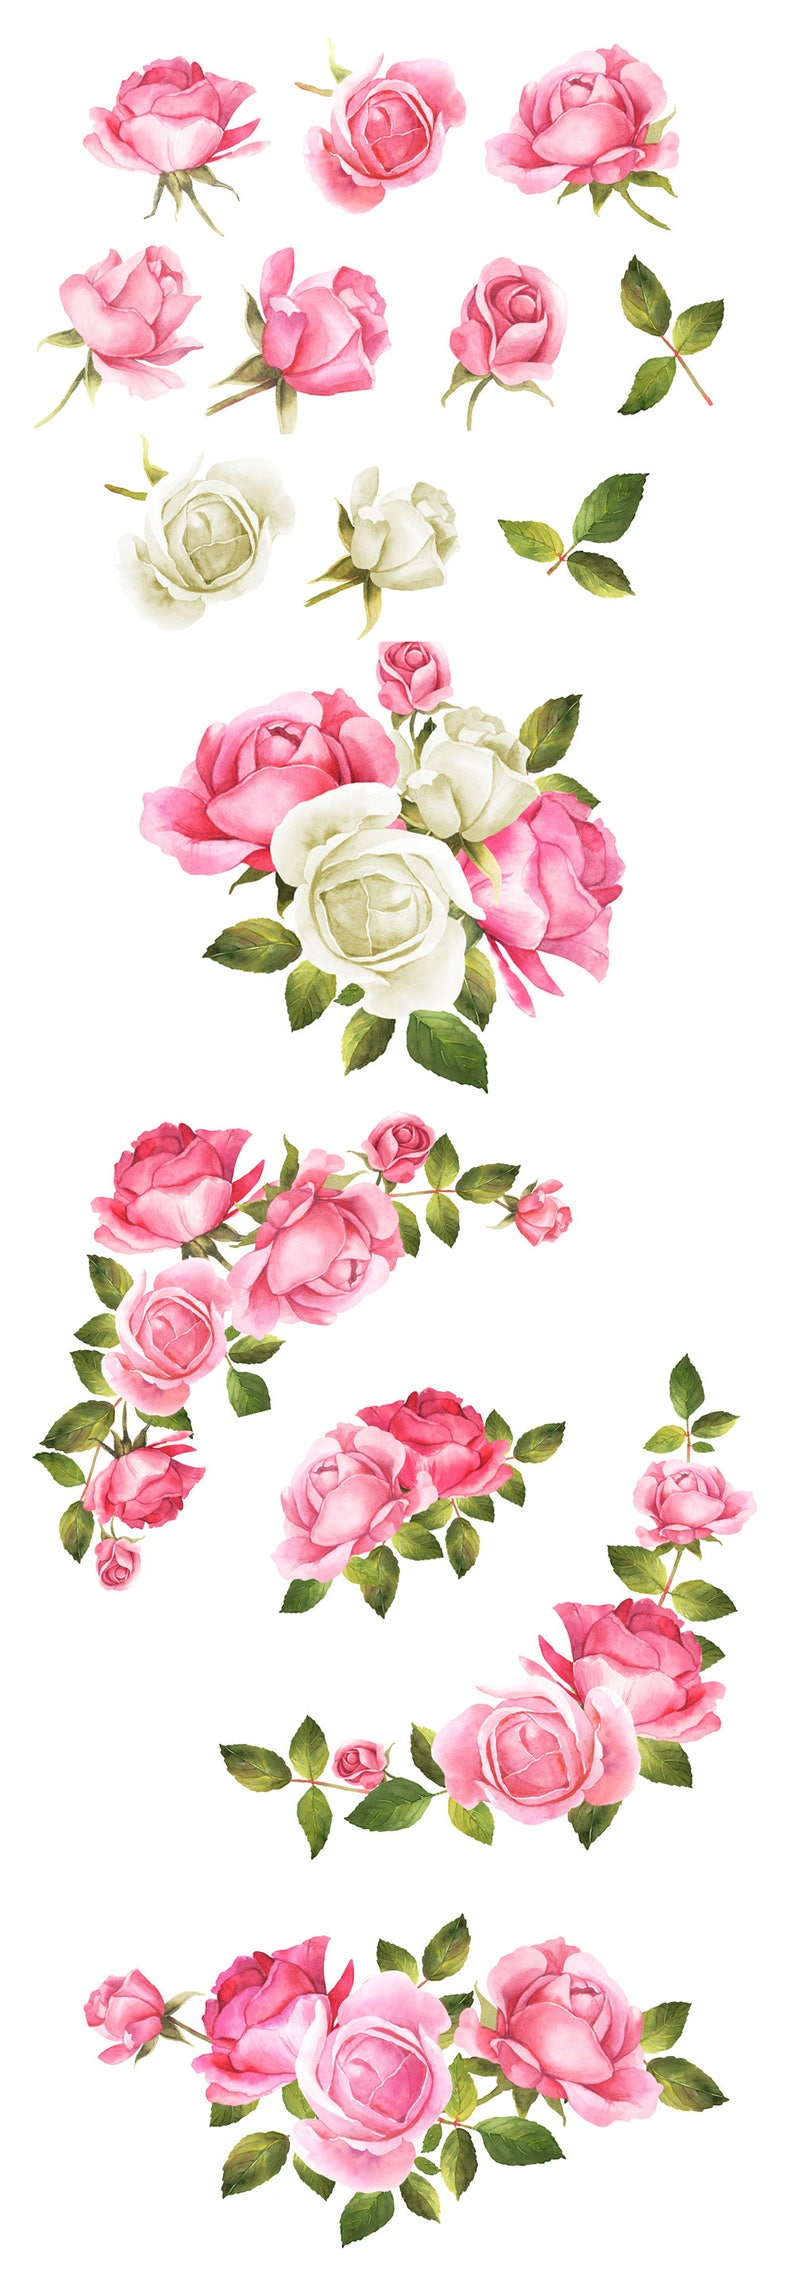 hand-painted Rose wedding bouquets Floral Clipart Roses bouquet Pink Wedding clipart Wedding Clip Art Wedding clipart White roses